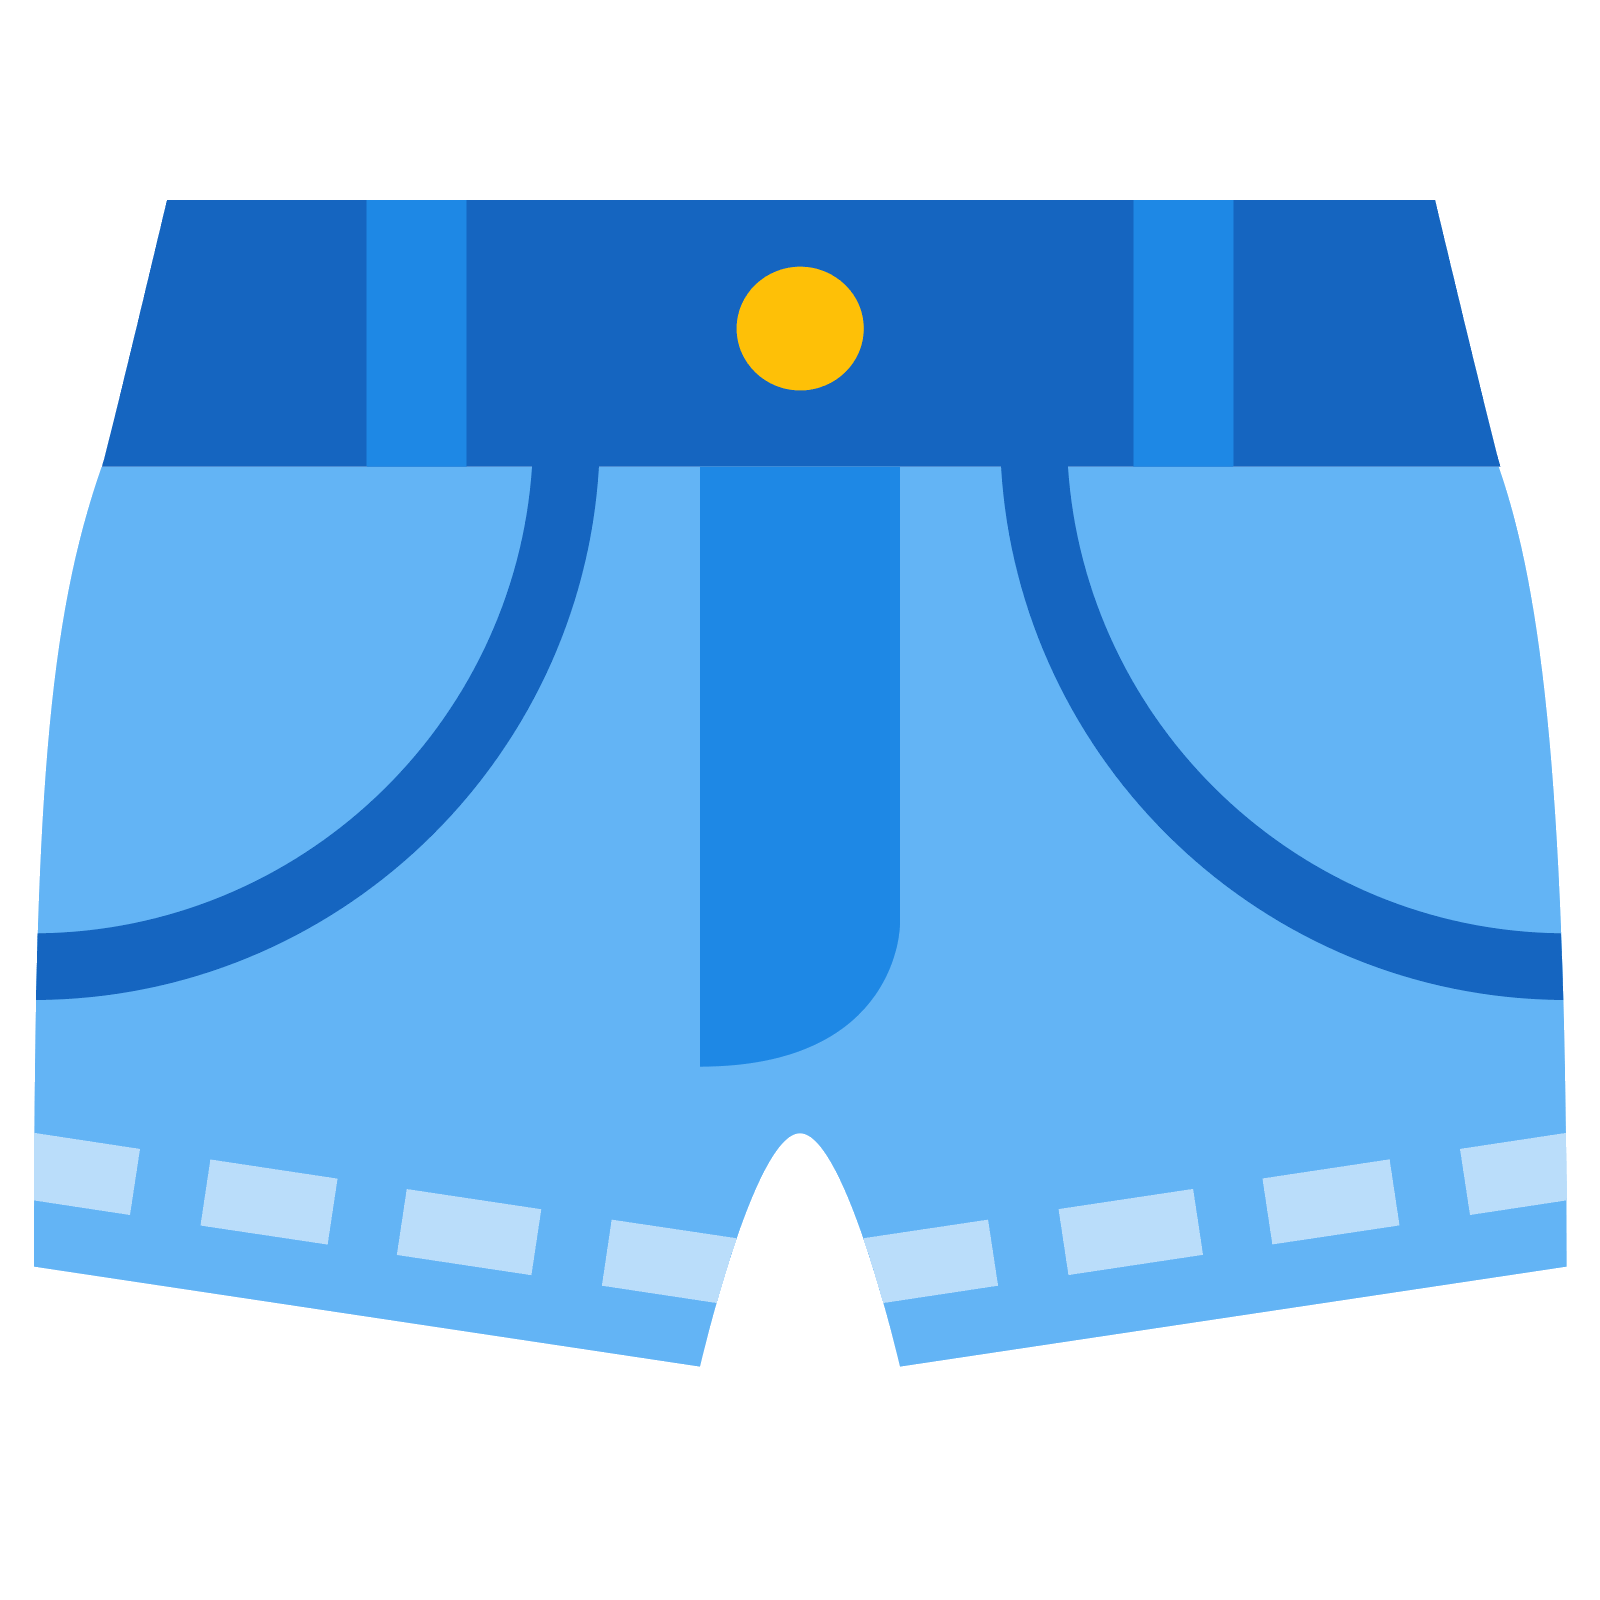 Shorts Png - Denim Shorts icon. PNG 50 px